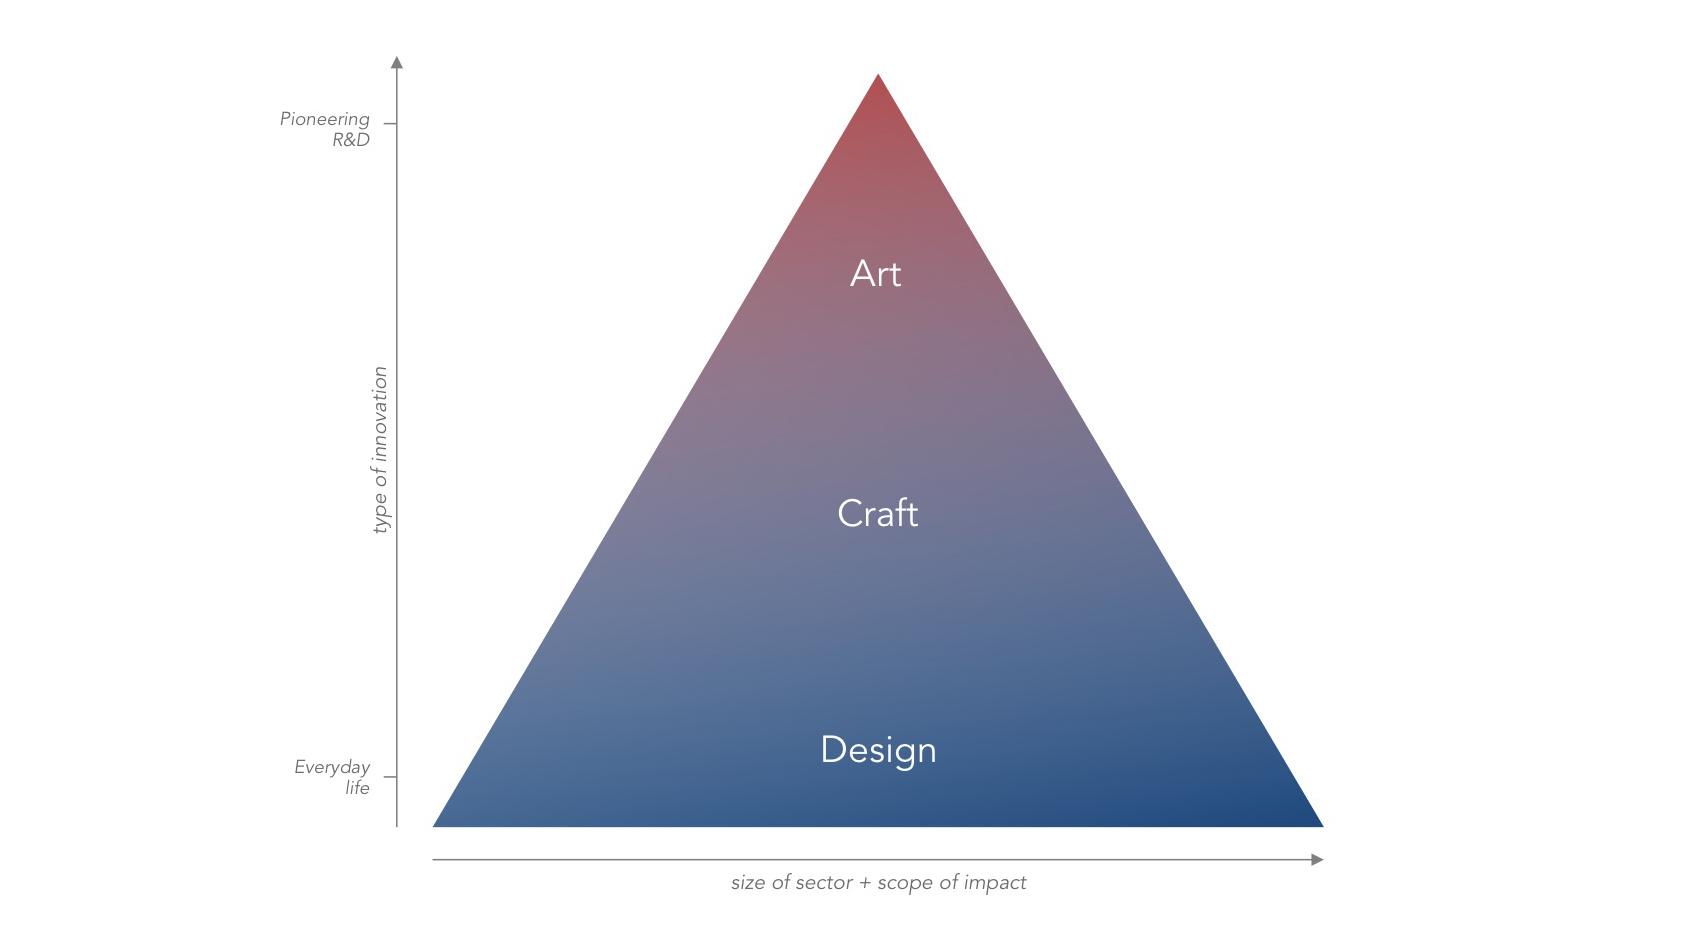 Art and design as different forms of innovation,  inspired by Simon Wardley